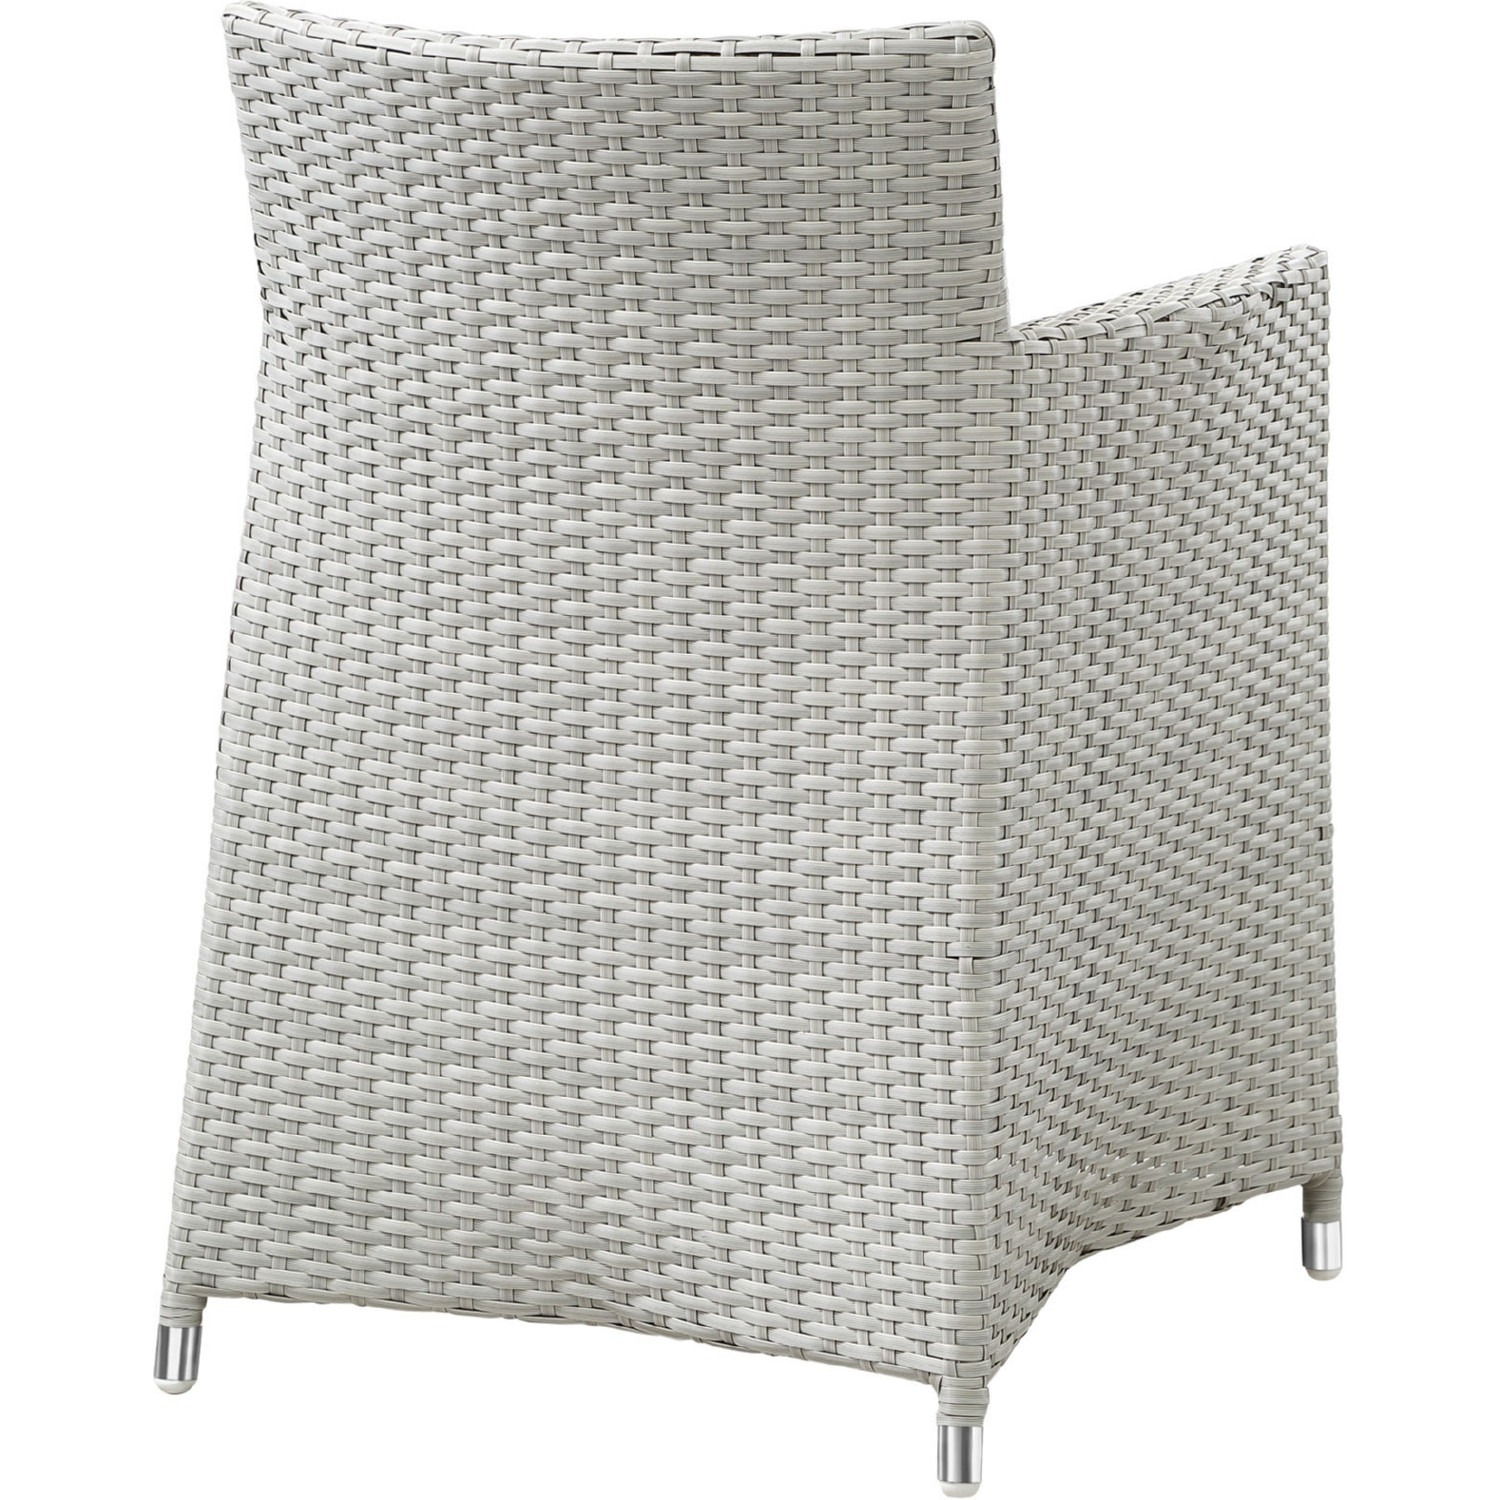 Modern 7-Piece Dining Set In Gray Rattan Weave - image-3